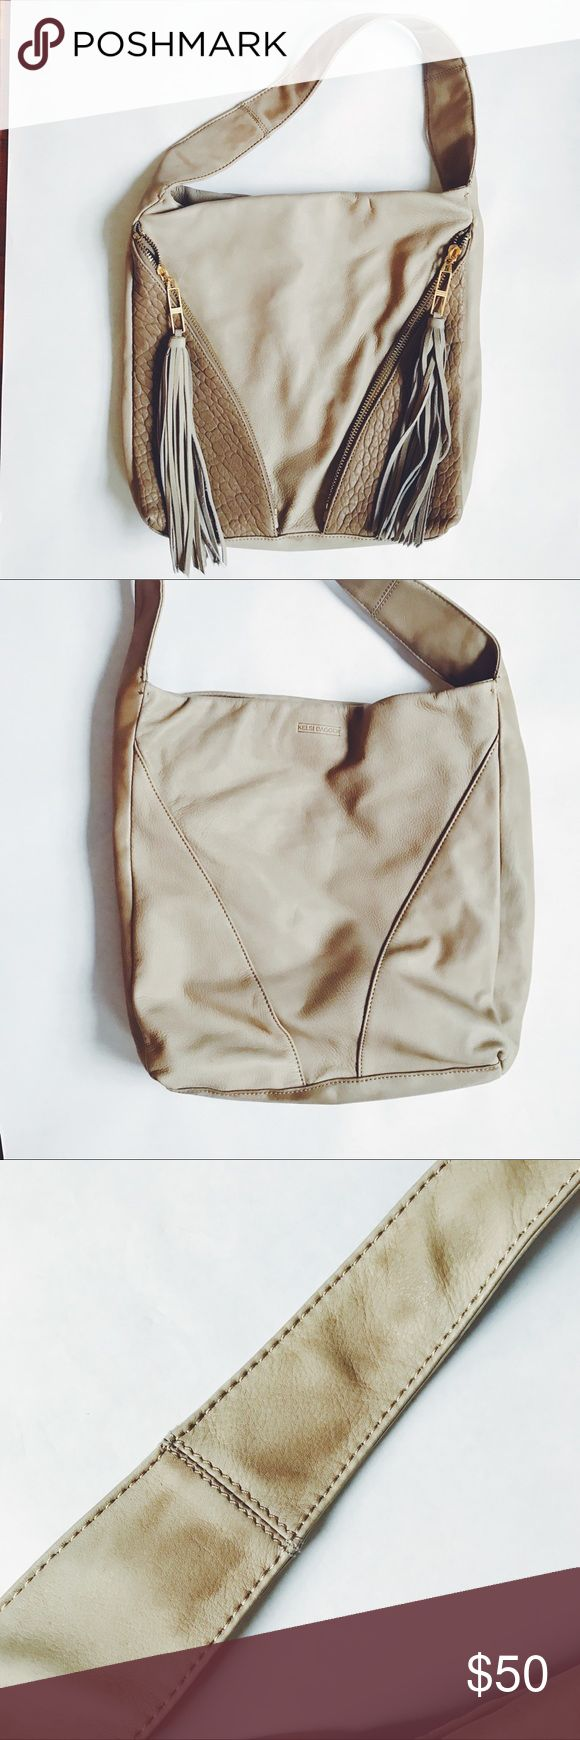 """Kelsi Dagger Issa taupe leather tassel hobo bag Soft taupe leather kelsi dagger hobo bag. Pebbled leather pockets, tassel zipper pulls. Clean interior. Darkening on strap and at corner, see photos. 13"""" w x 13.5"""" h x 2"""" d with an 8"""" strap drop. Kelsi Dagger Bags Hobos"""